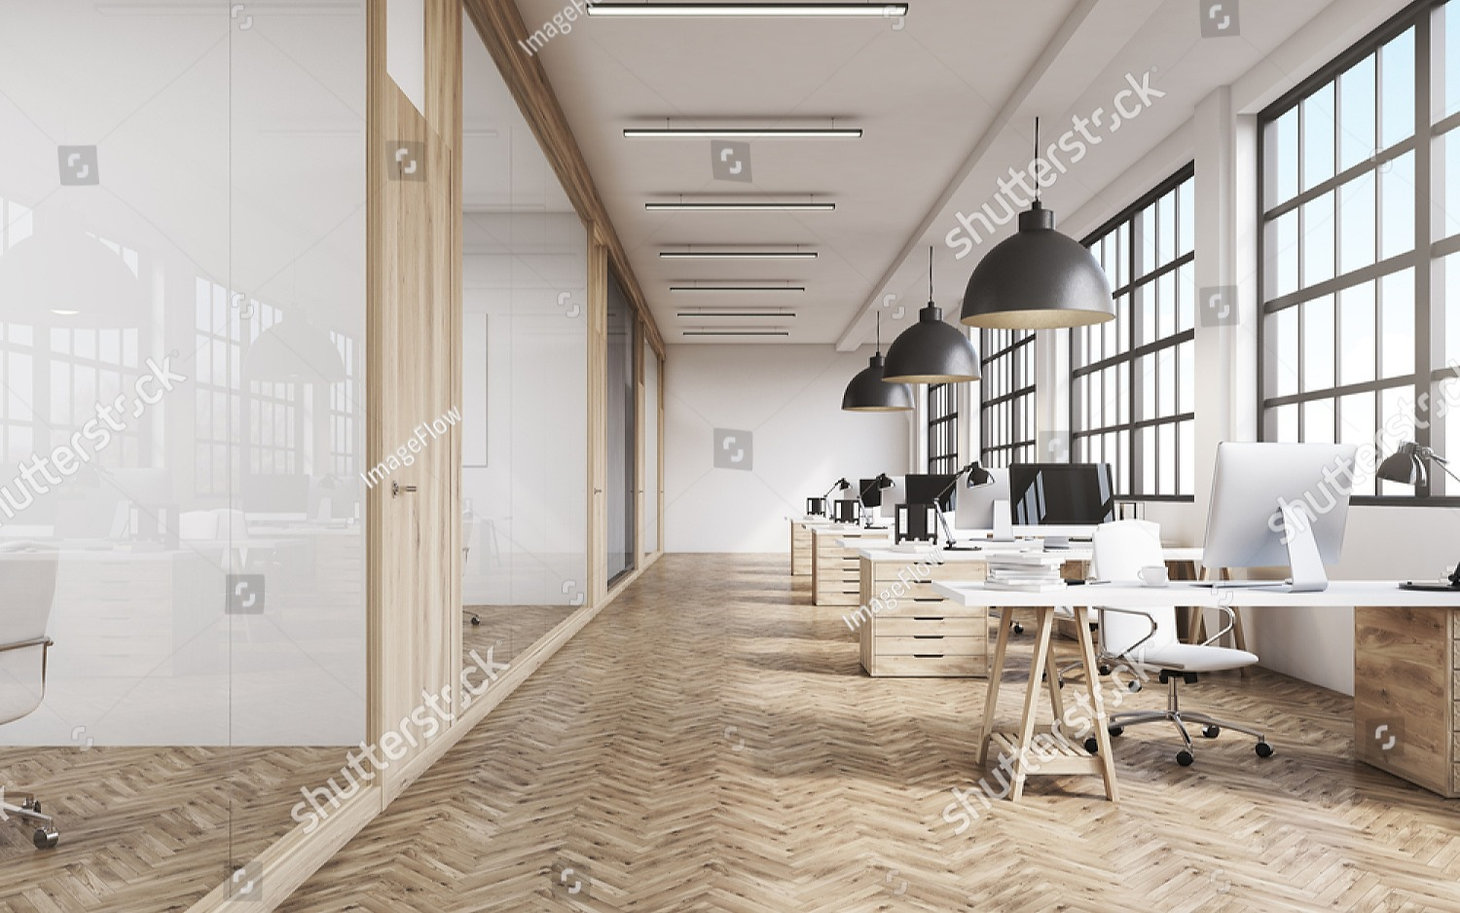 stock-photo-front-view-of-an-office-inte